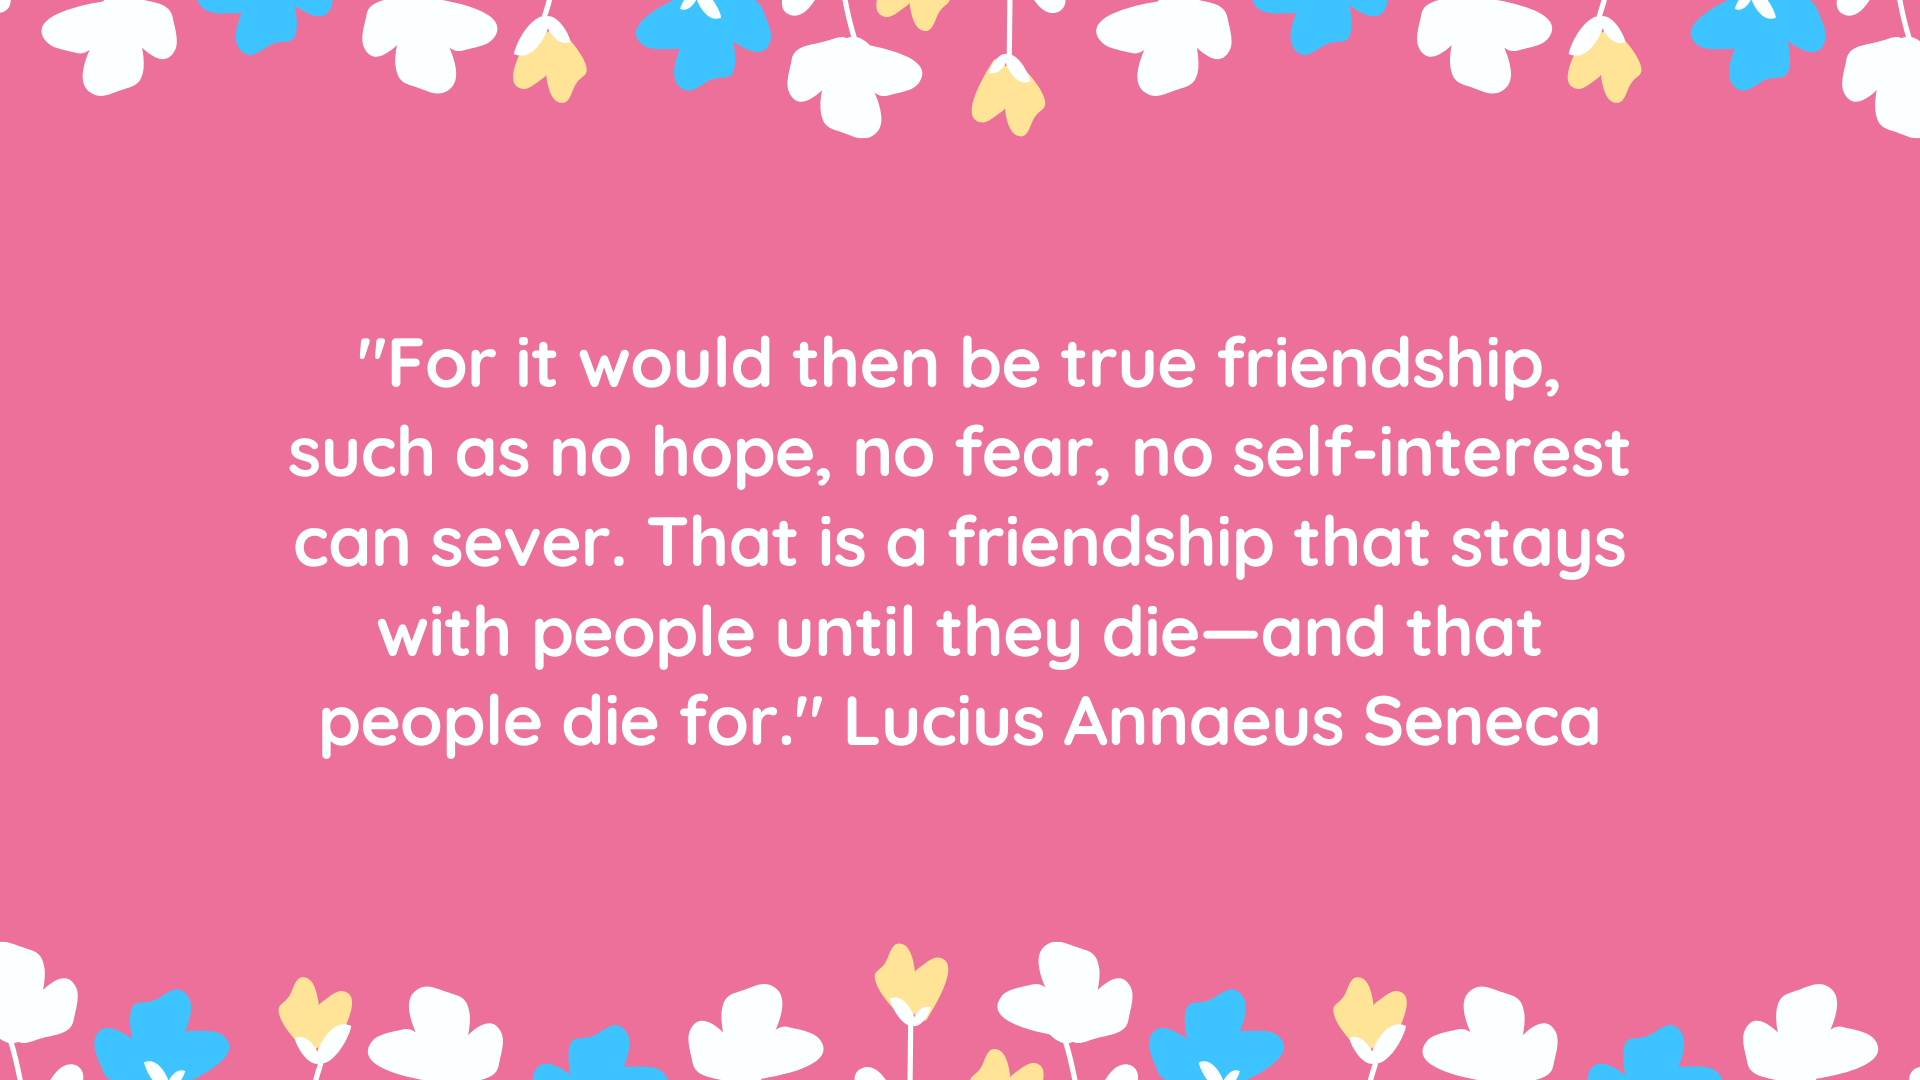 """For it would then be true friendship, such as no hope, no fear, no self-interest can sever. That is a friendship that stays with people until they die—and that people die for."" Lucius Annaeus Seneca"